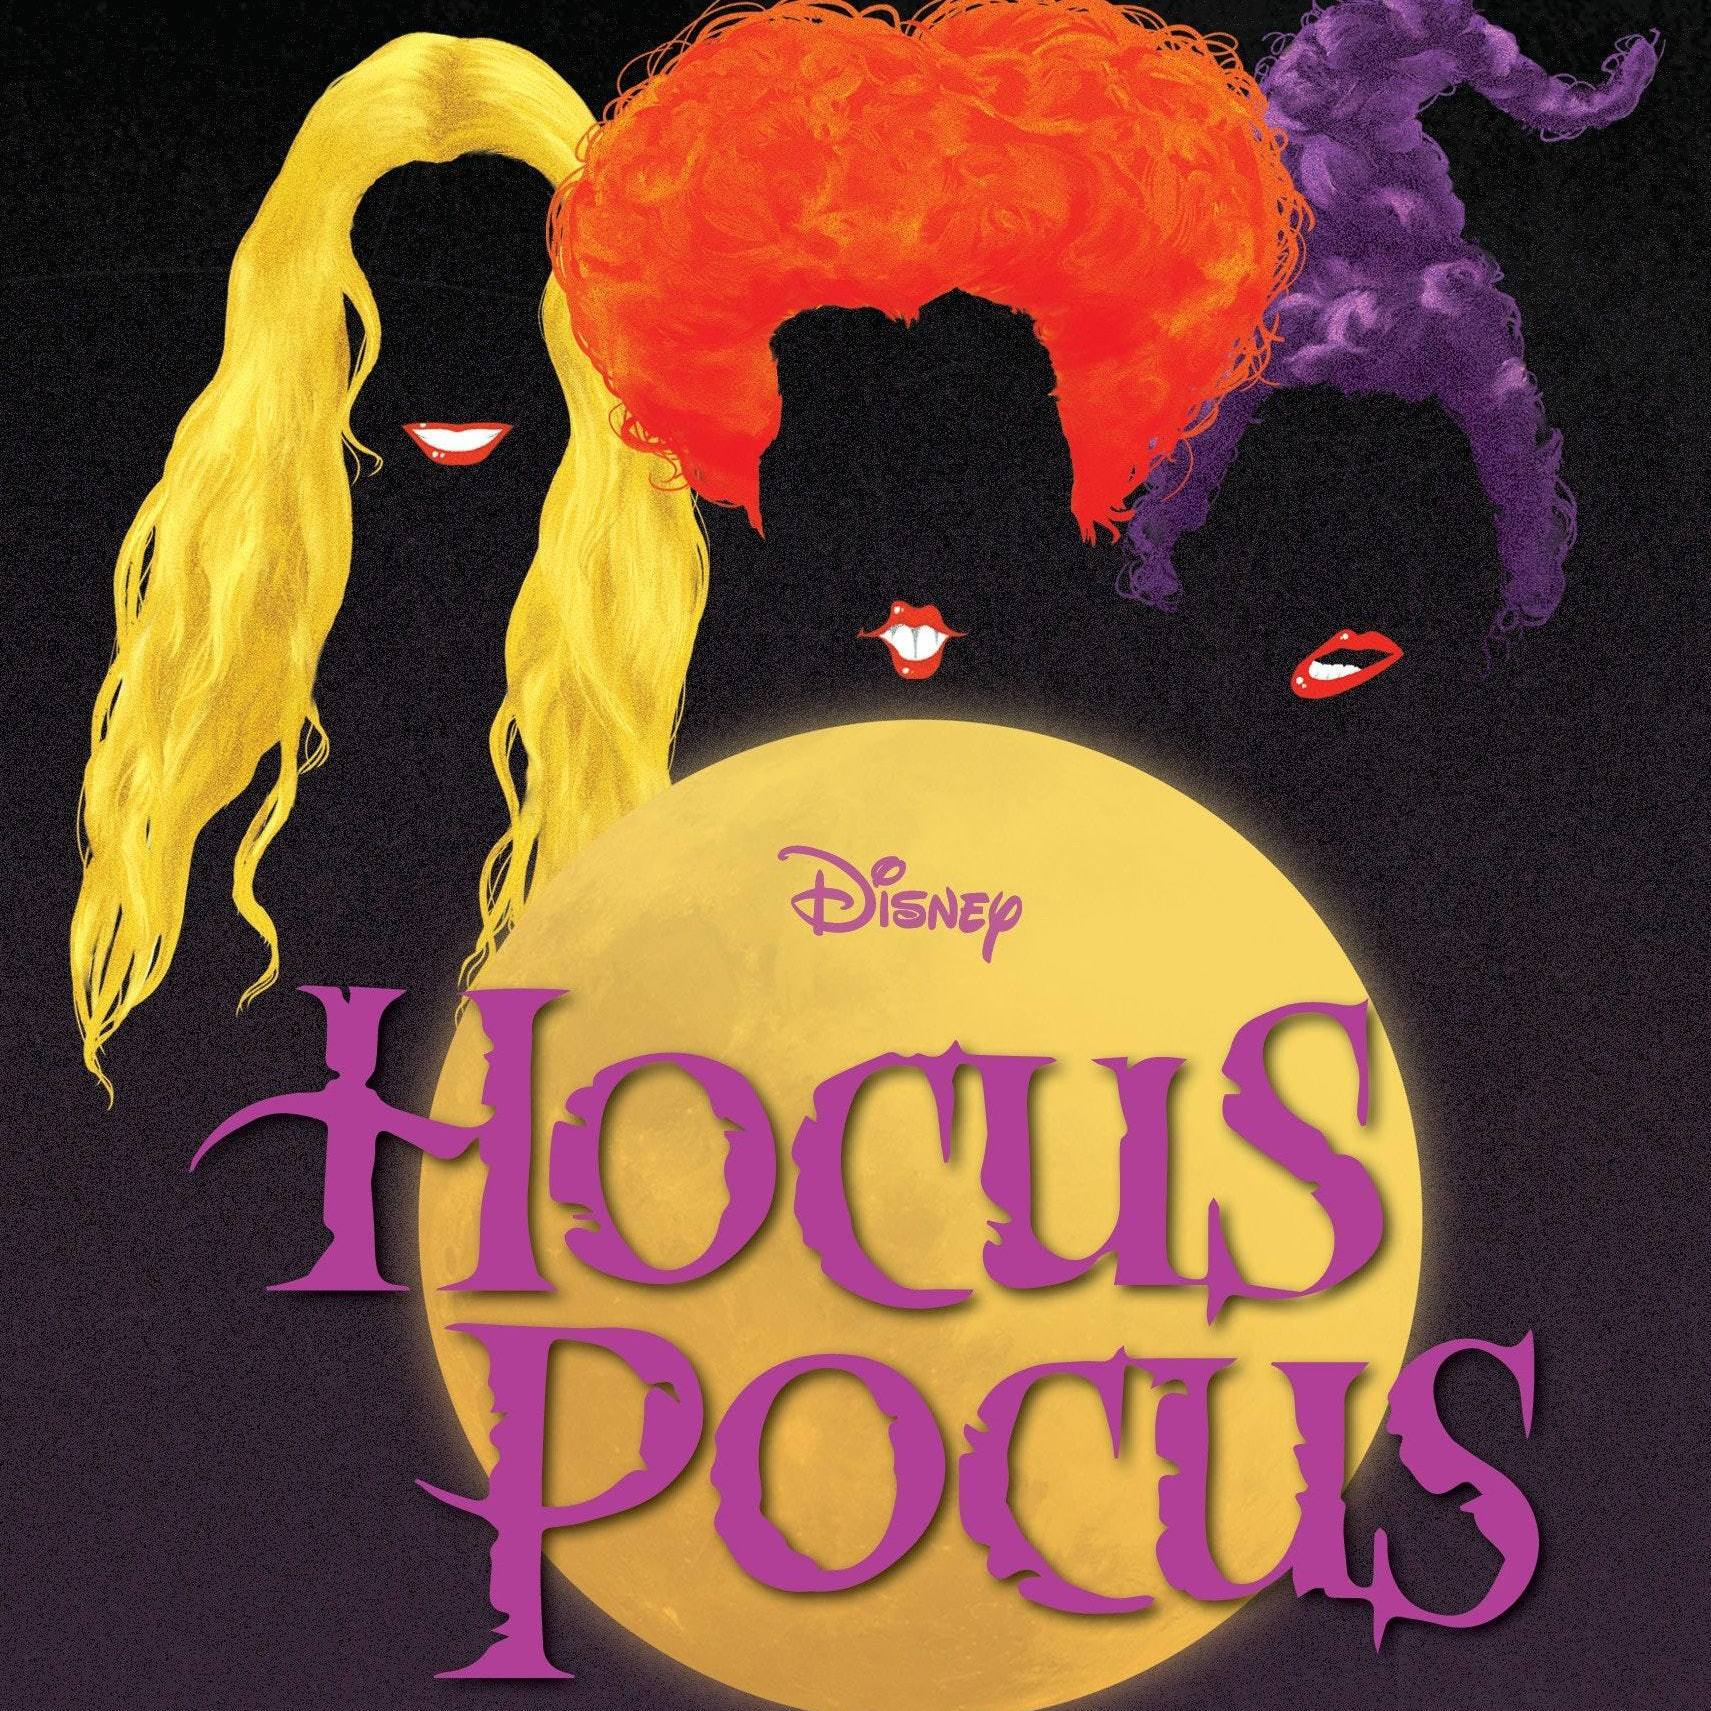 There's a New Book About Hocus Pocus and We've Got the Exclusive Cover Art and an Excerpt